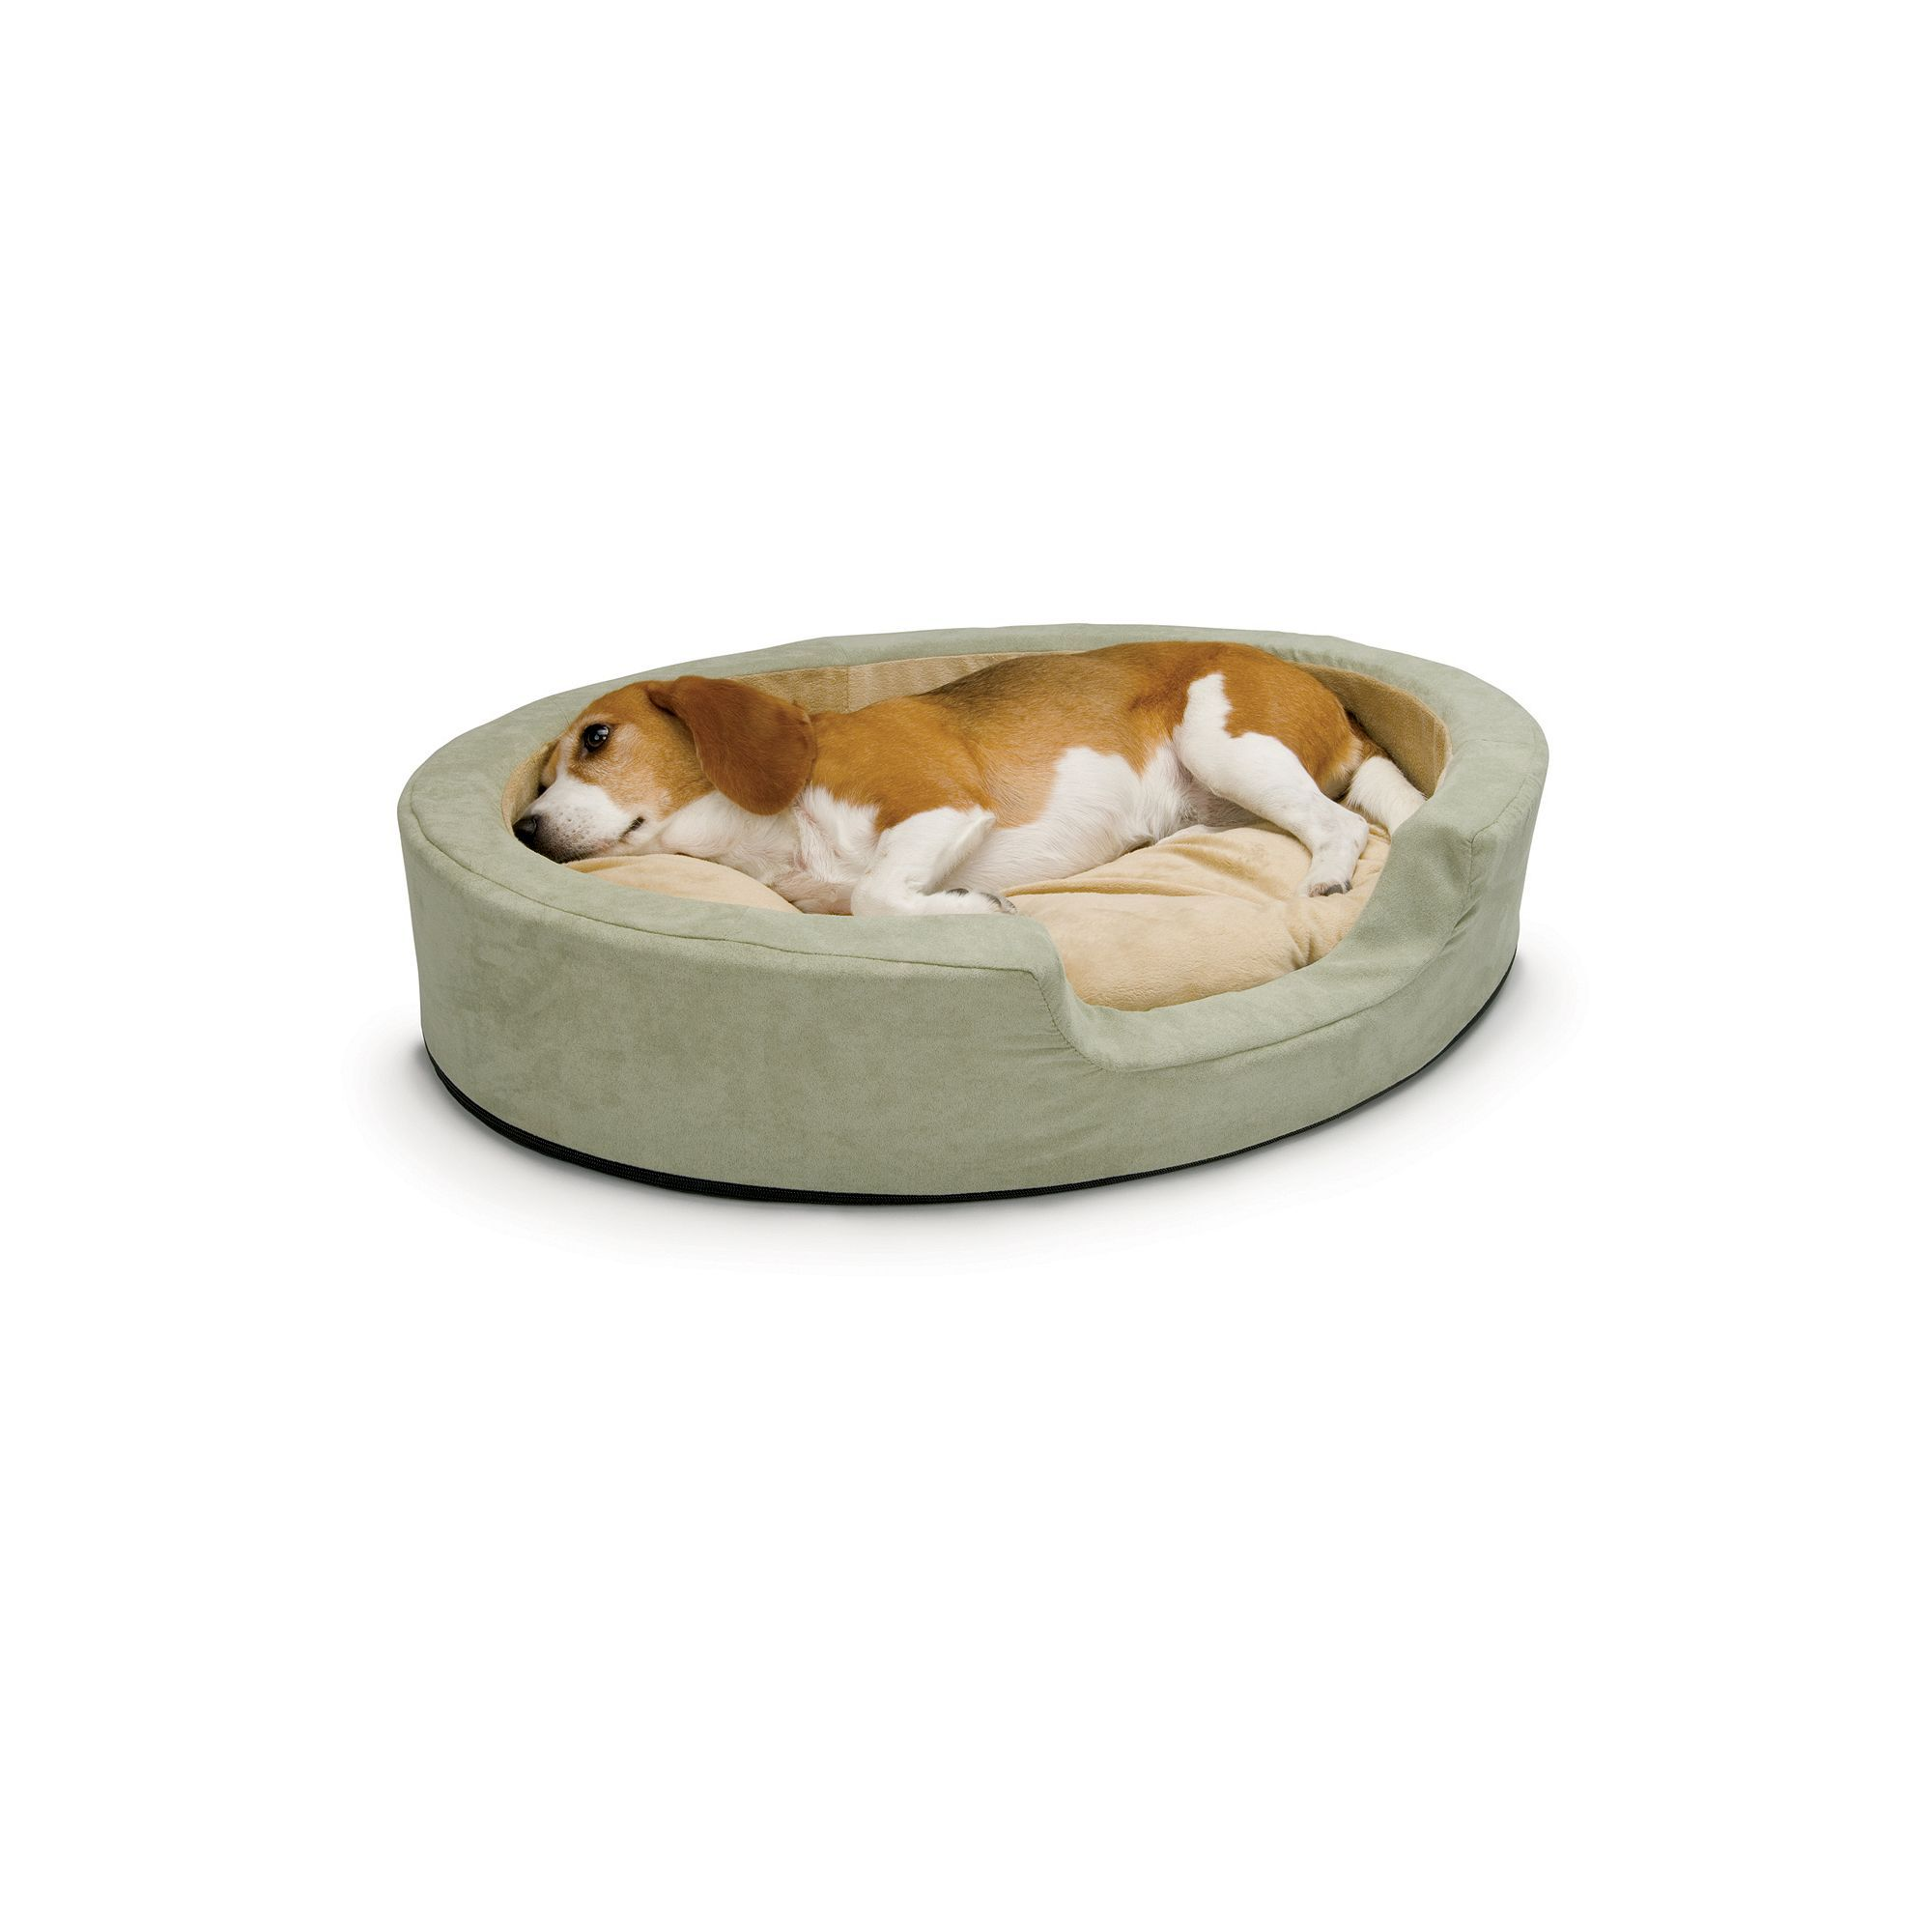 K And H Pet Thermo Snuggly Sleeper Oval Pet Bed 24 X 21